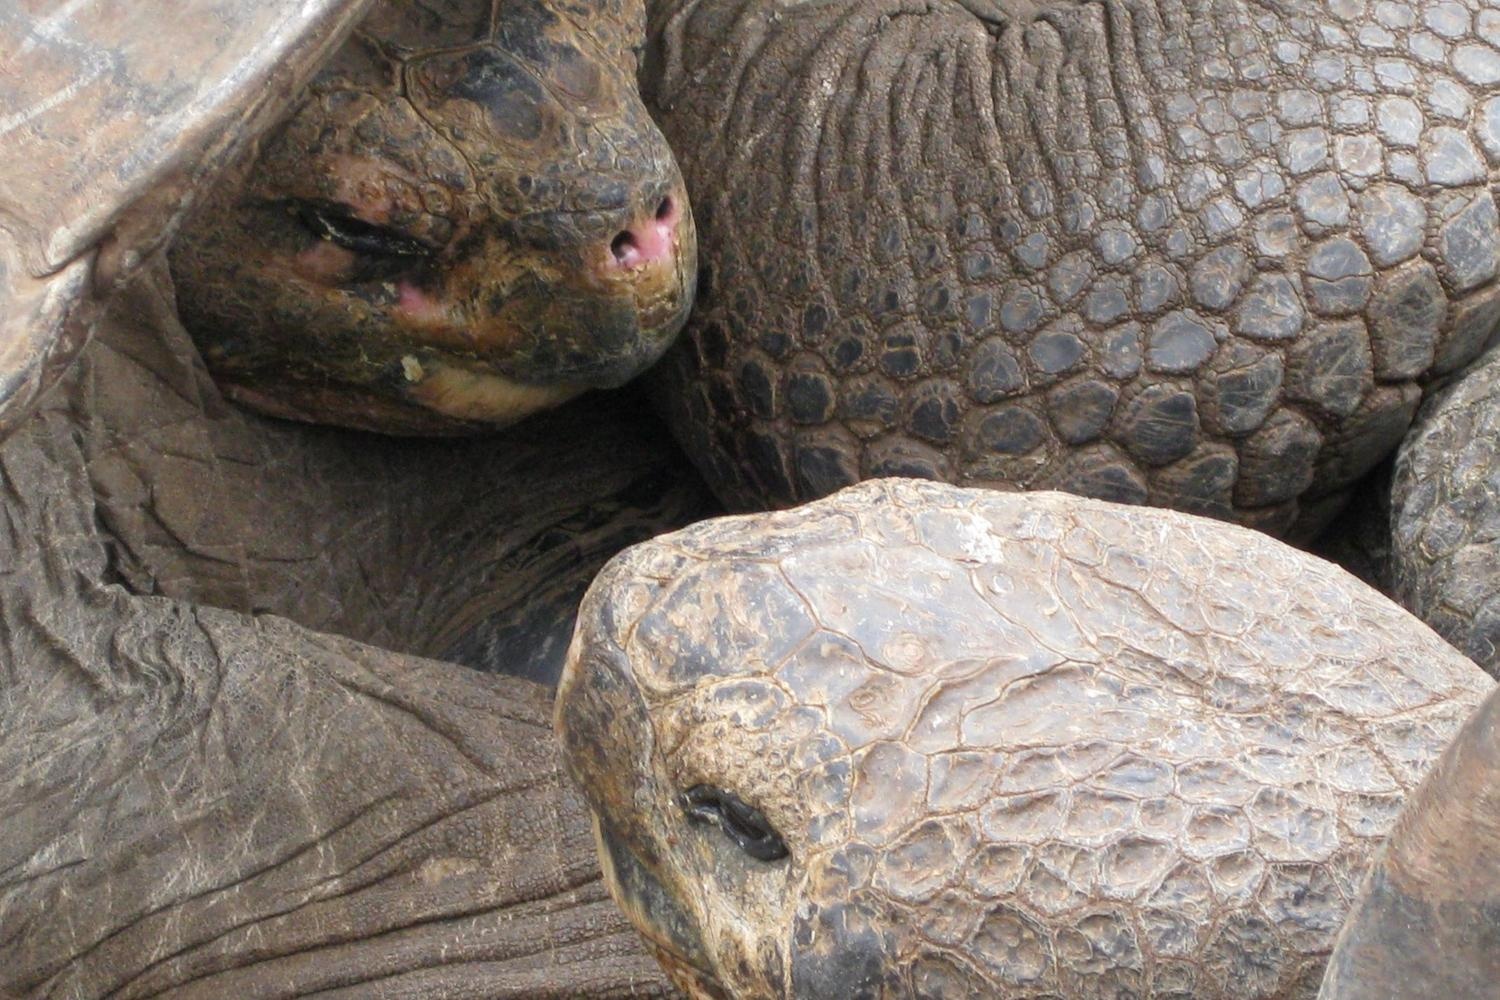 Giant tortoise close encounter in the Galapagos Islands